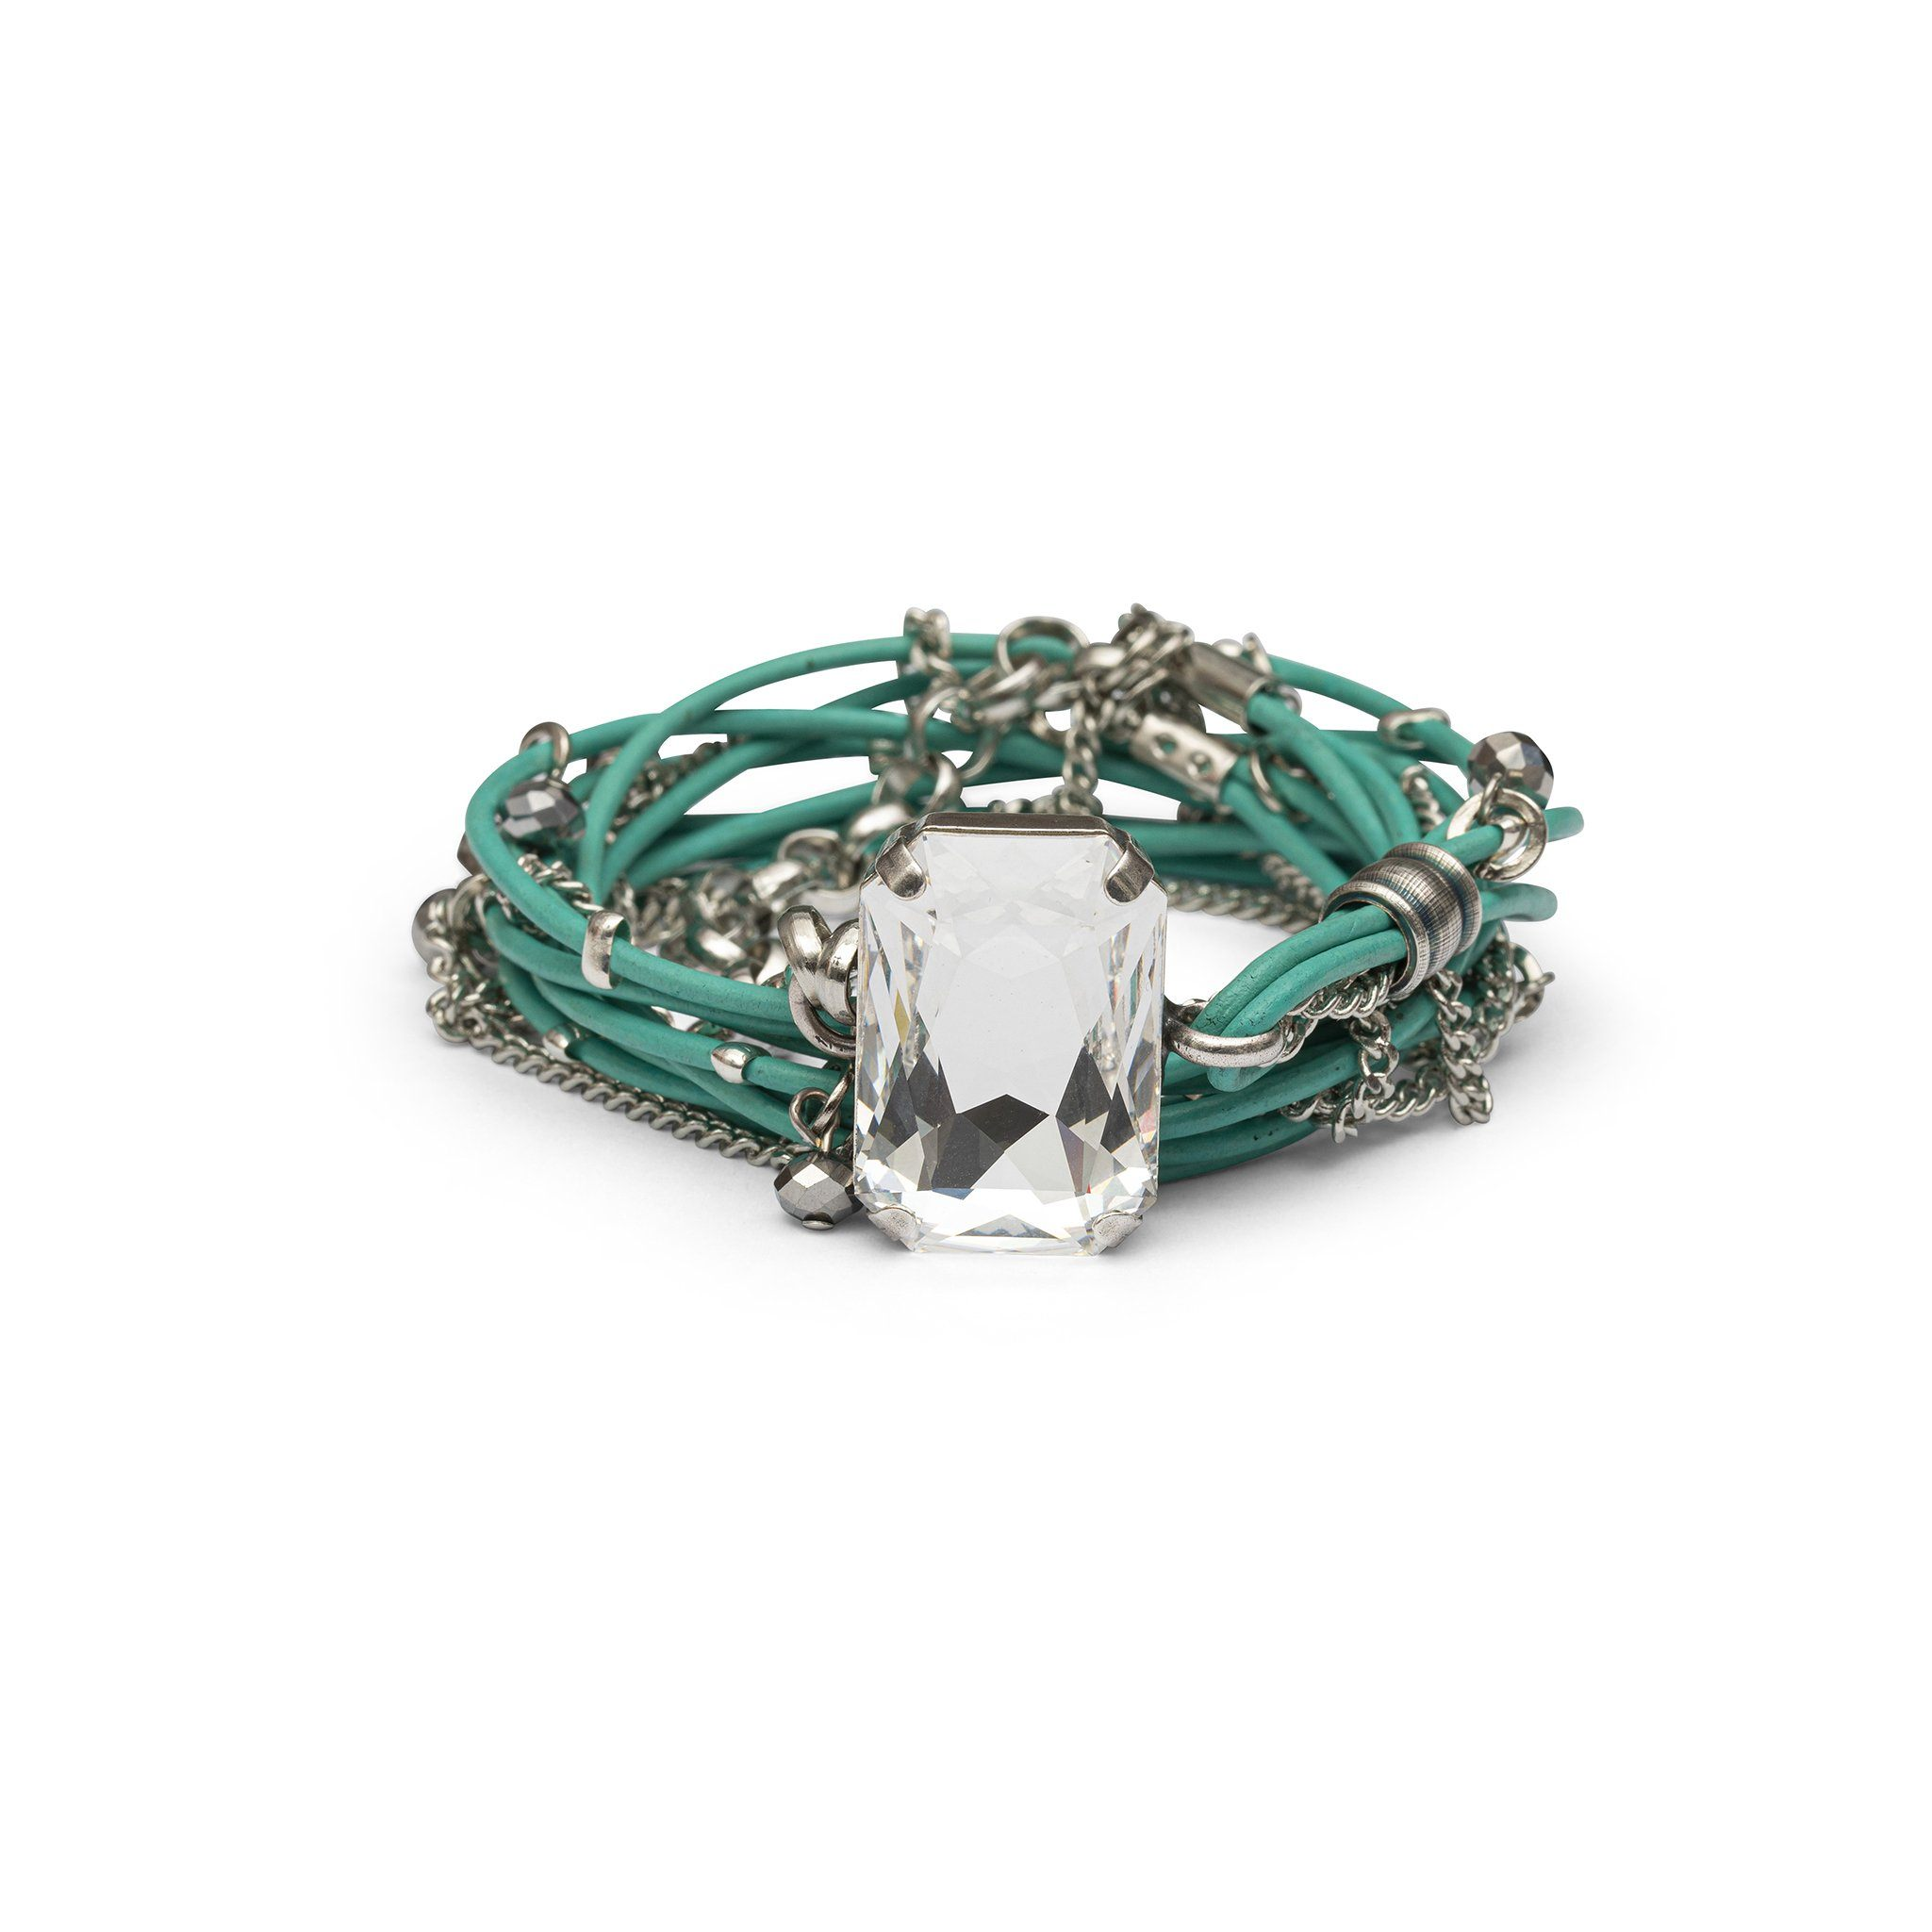 Stardust Leather Bracelet - Turquoise & Silver